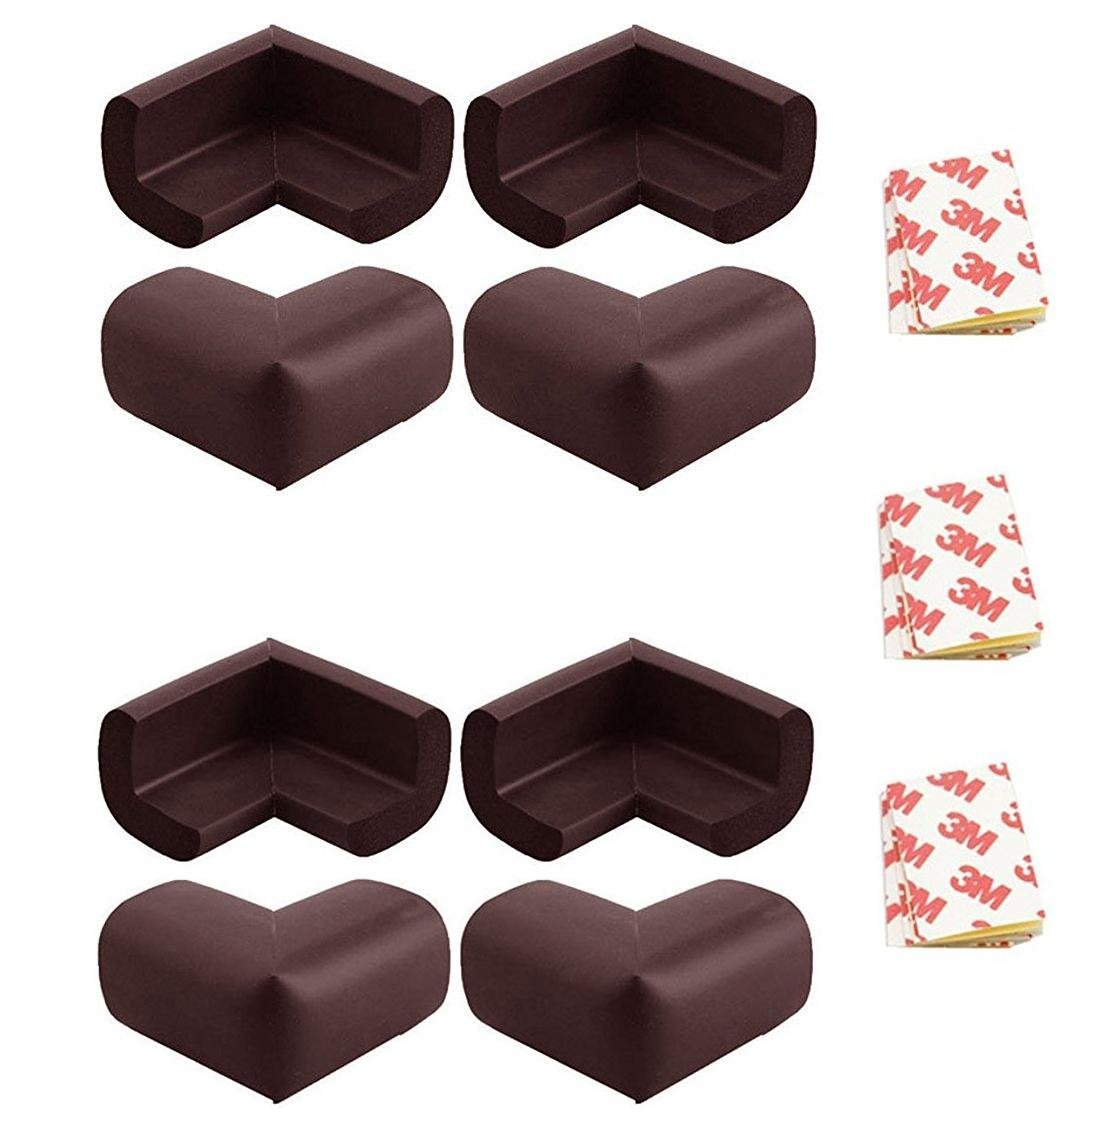 8pcs Child Baby Corner Edge Furniture Protectors Soft Safety Protection Cushion